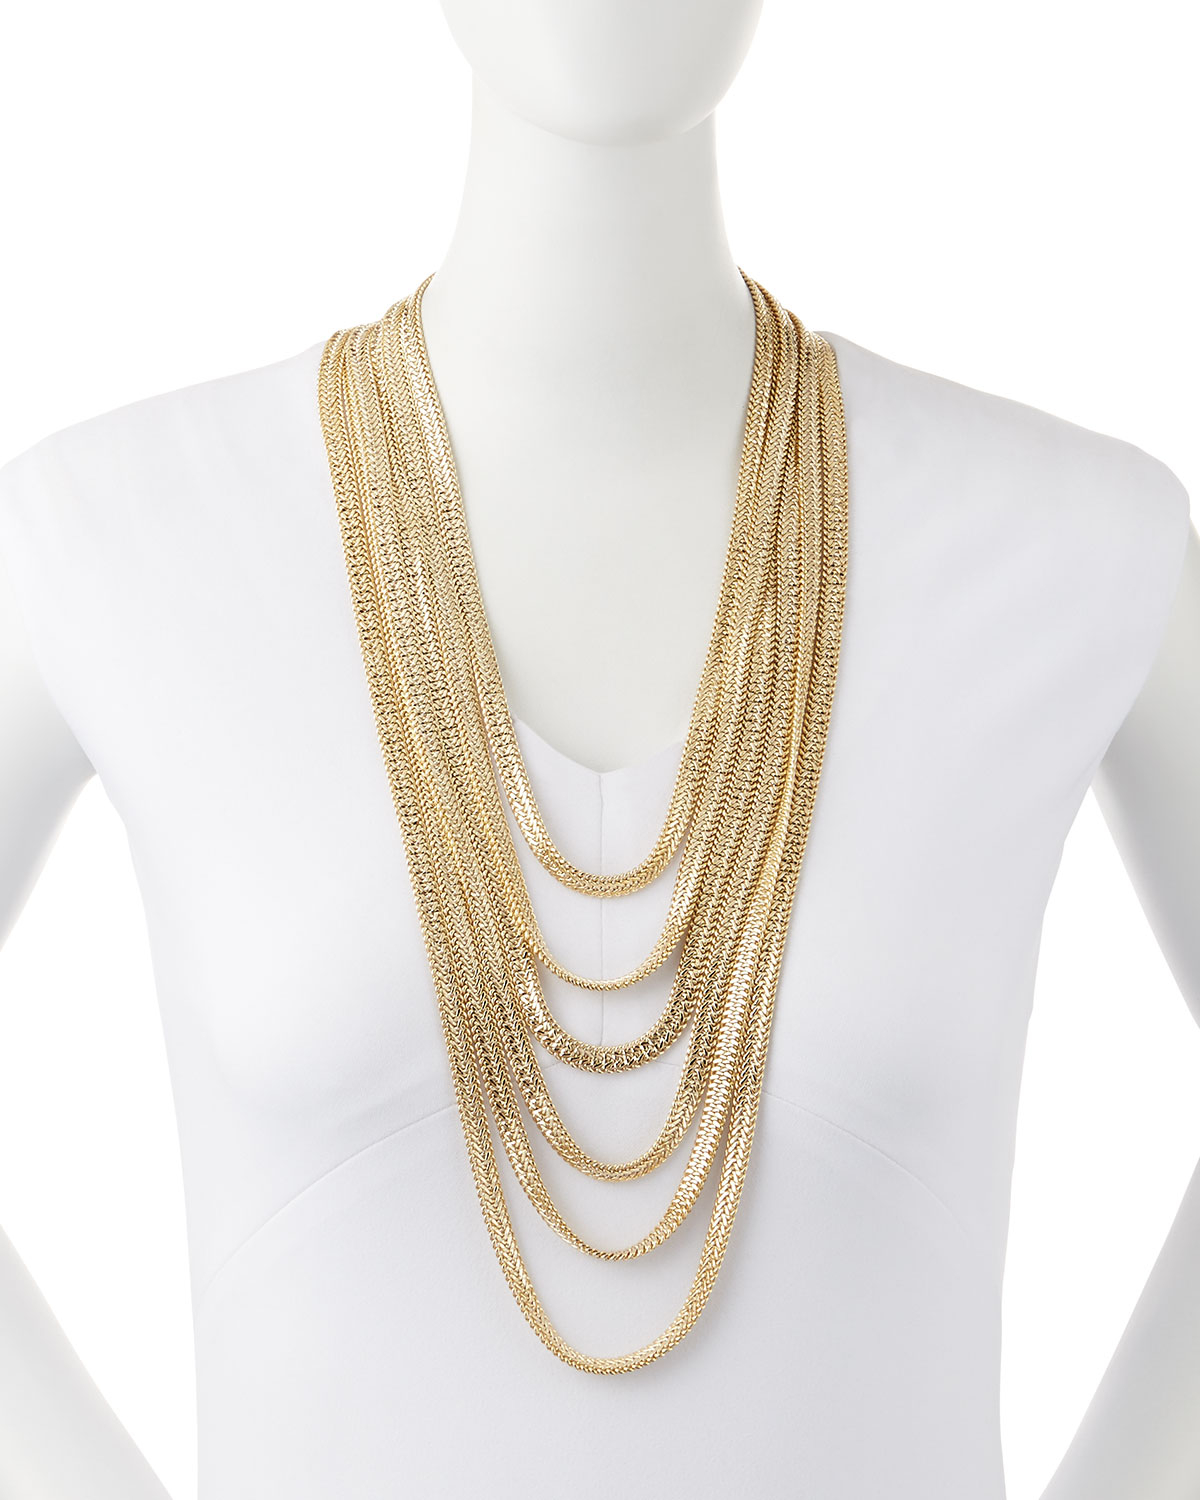 Iliade Gold-Dipped Tiered Necklace Rosantica Hy9hJ